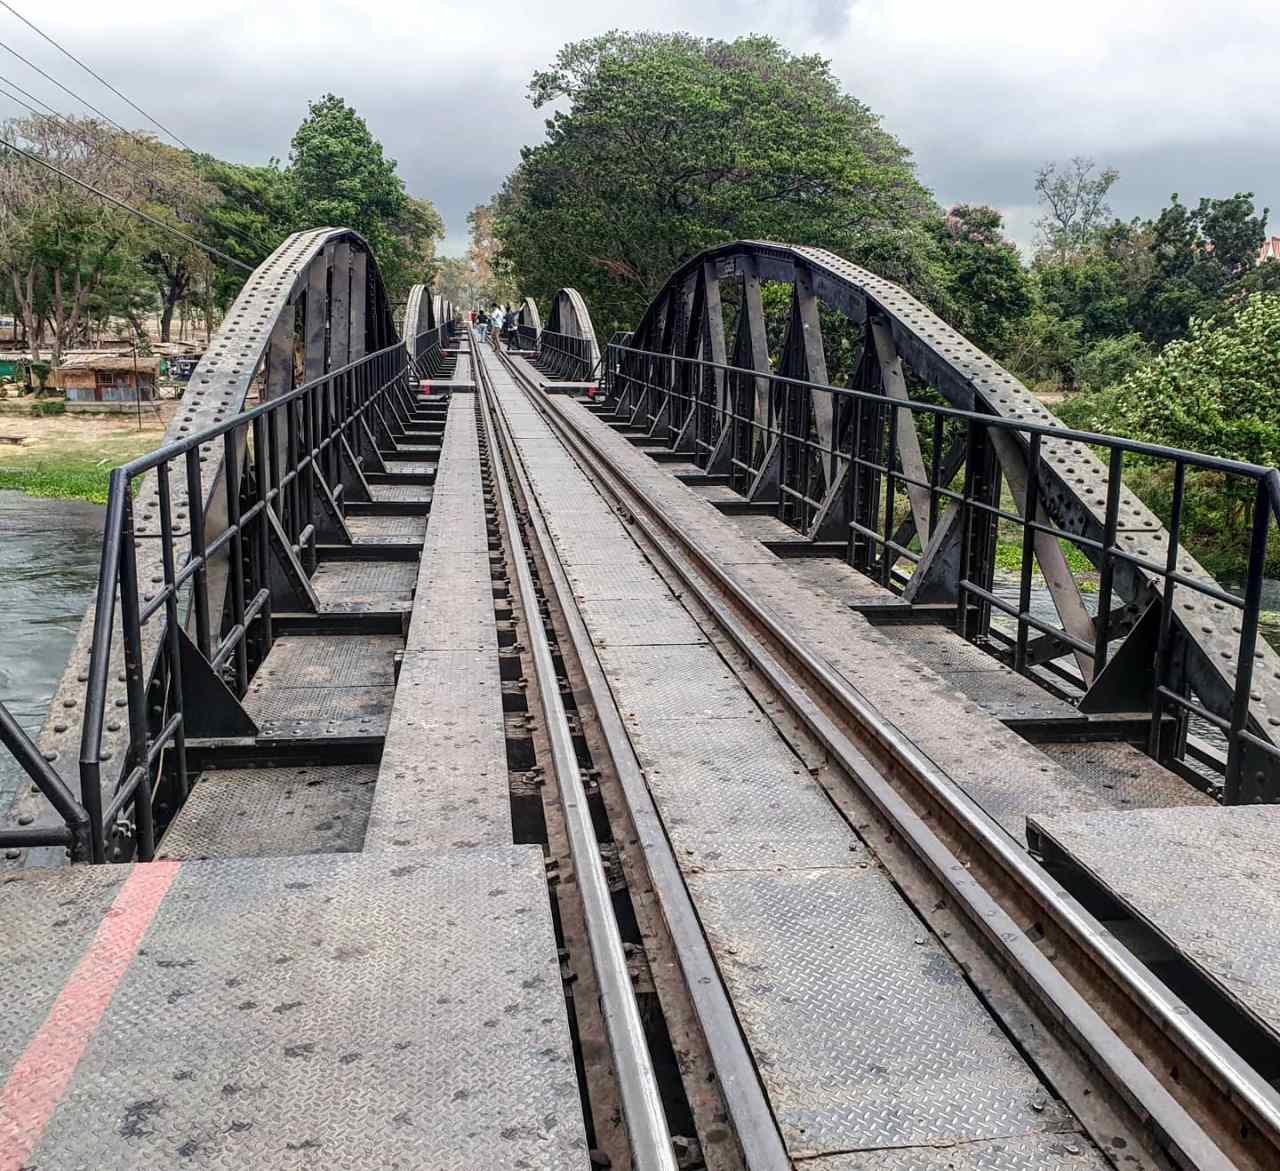 Day 197: Not the Bridge Over the River Kwai